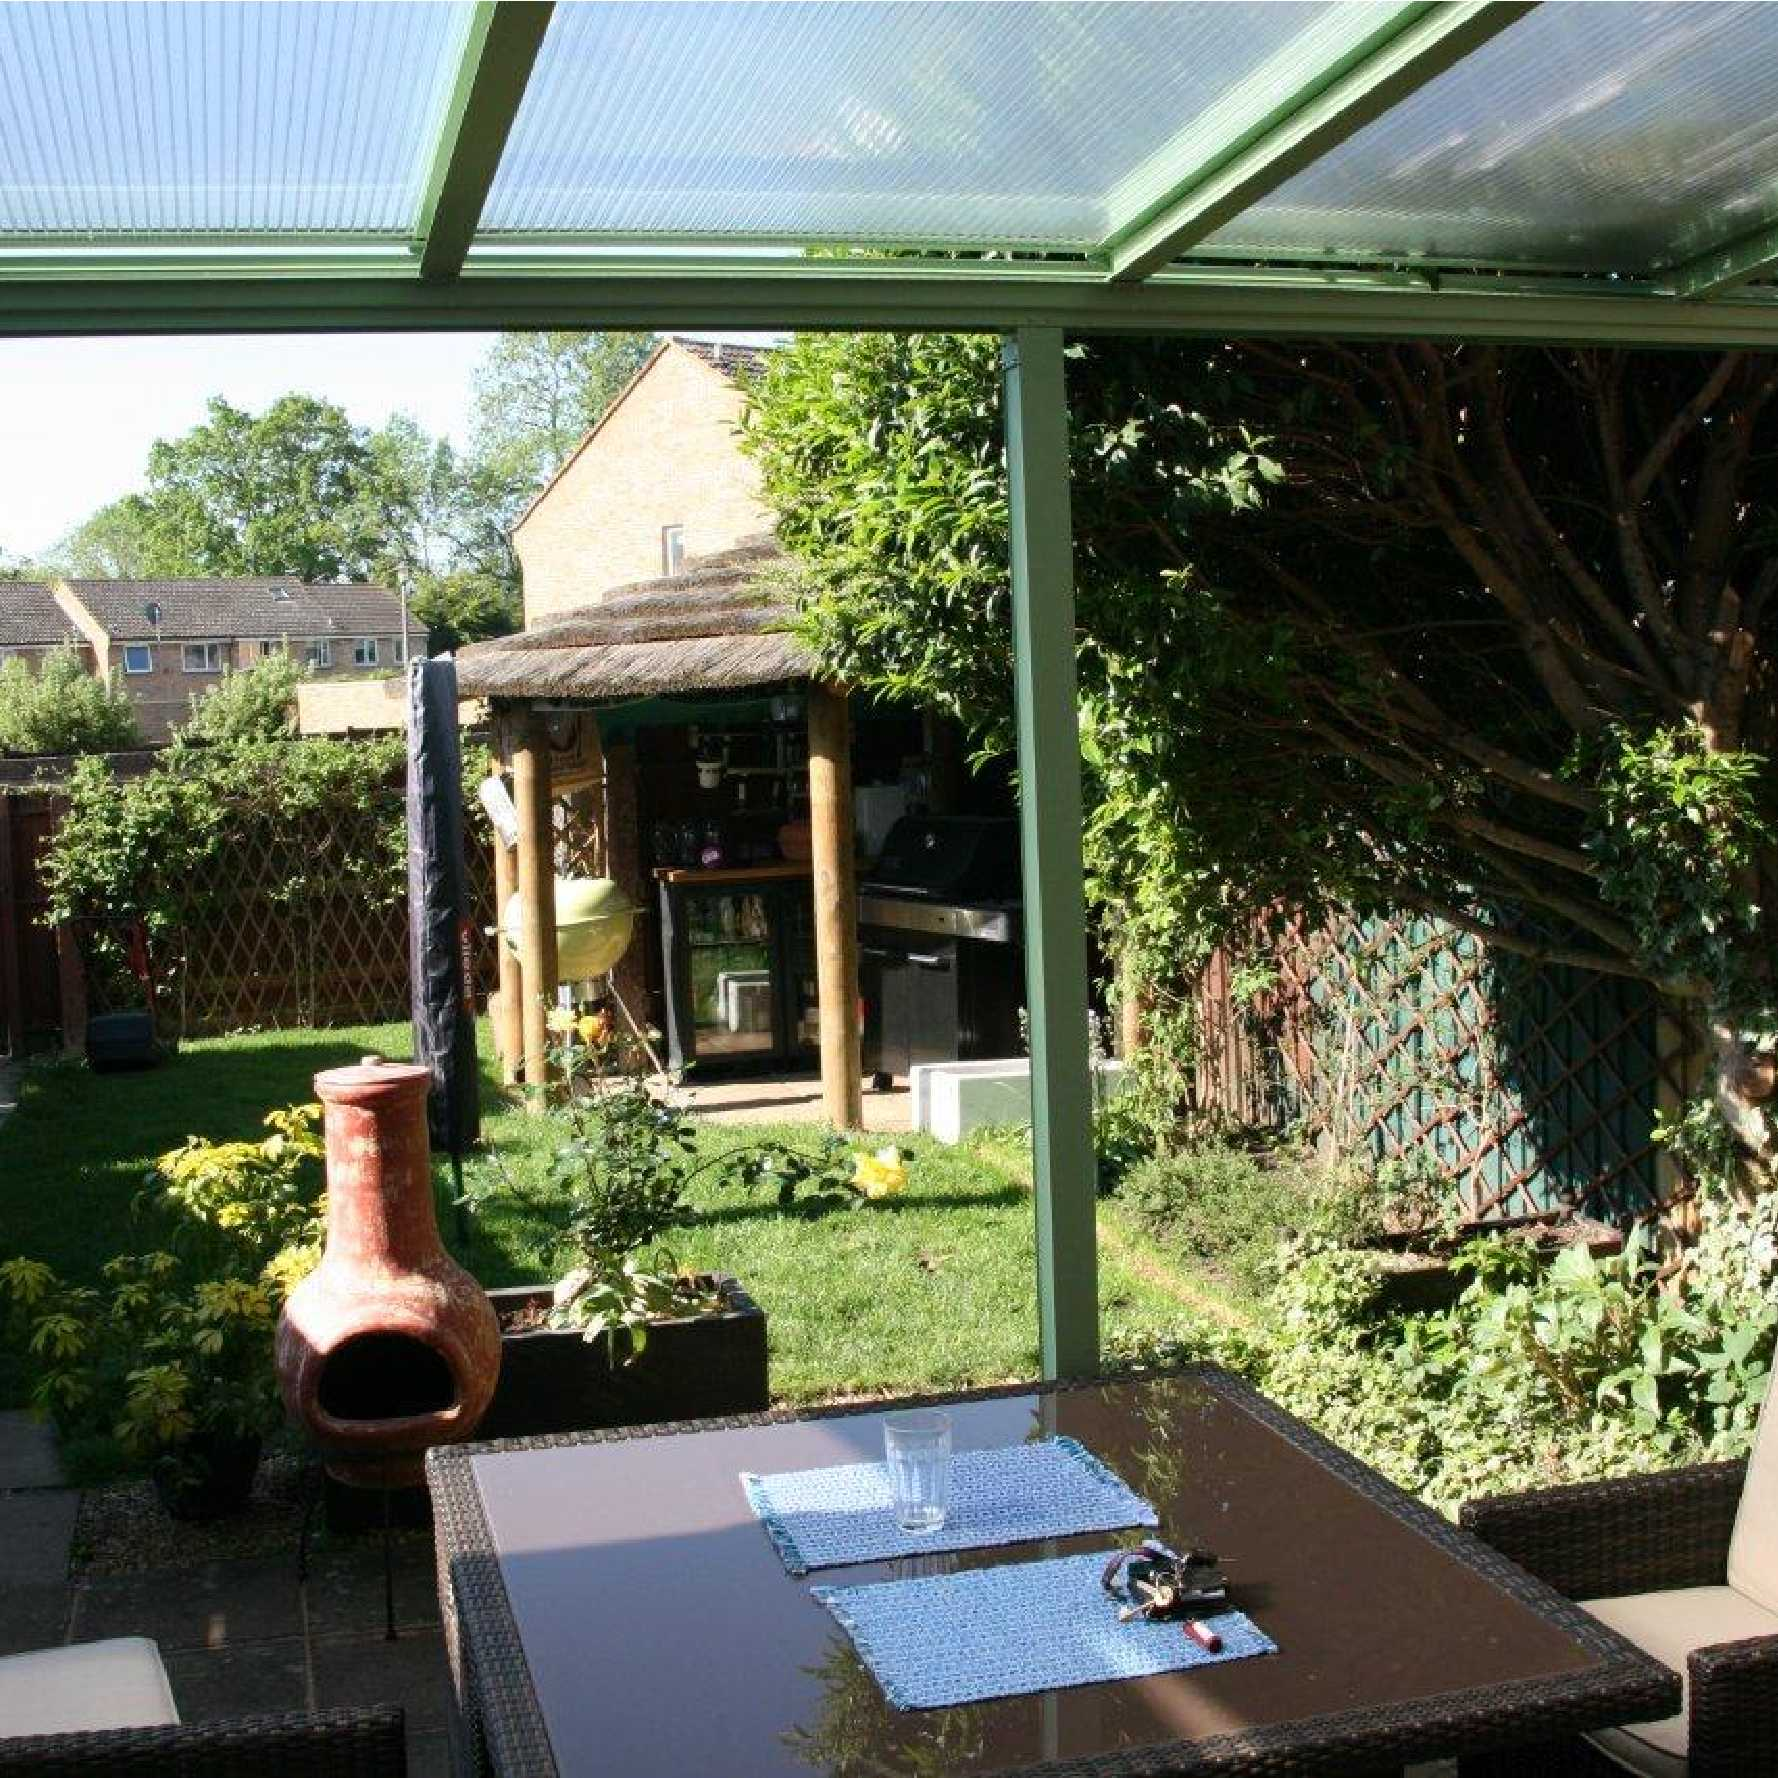 Affordable Omega Smart White Lean-To Canopy with 16mm Polycarbonate Glazing - 10.6m (W) x 3.5m (P), (5) Supporting Posts